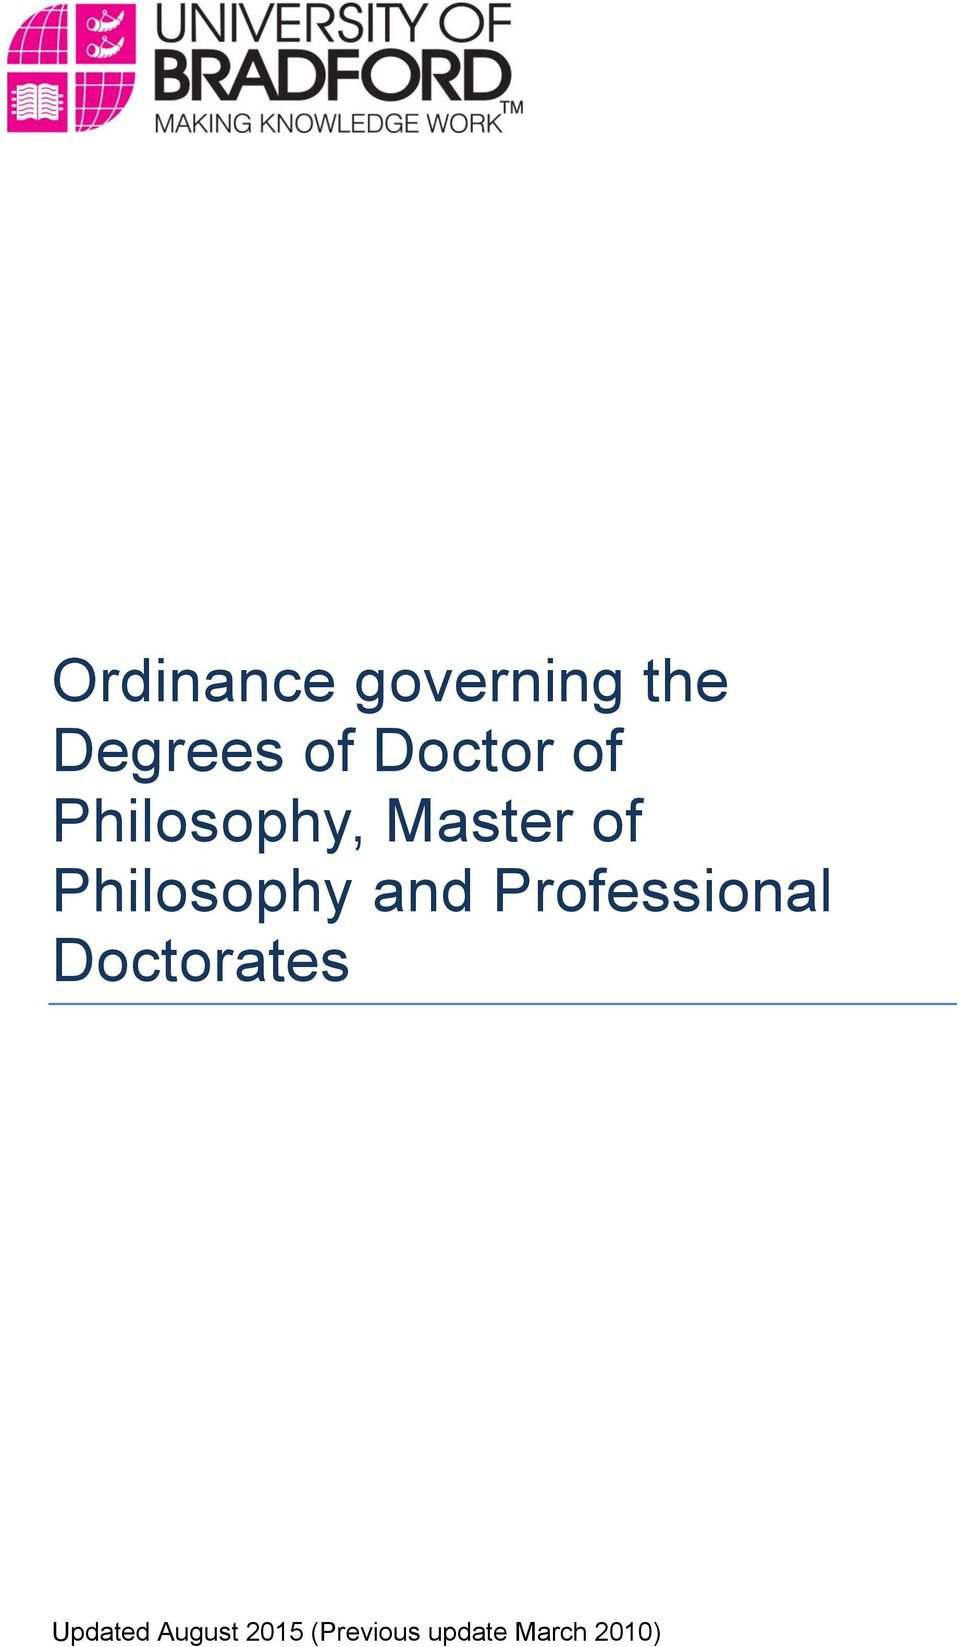 Ordinance governing the Degrees of Doctor of Philosophy